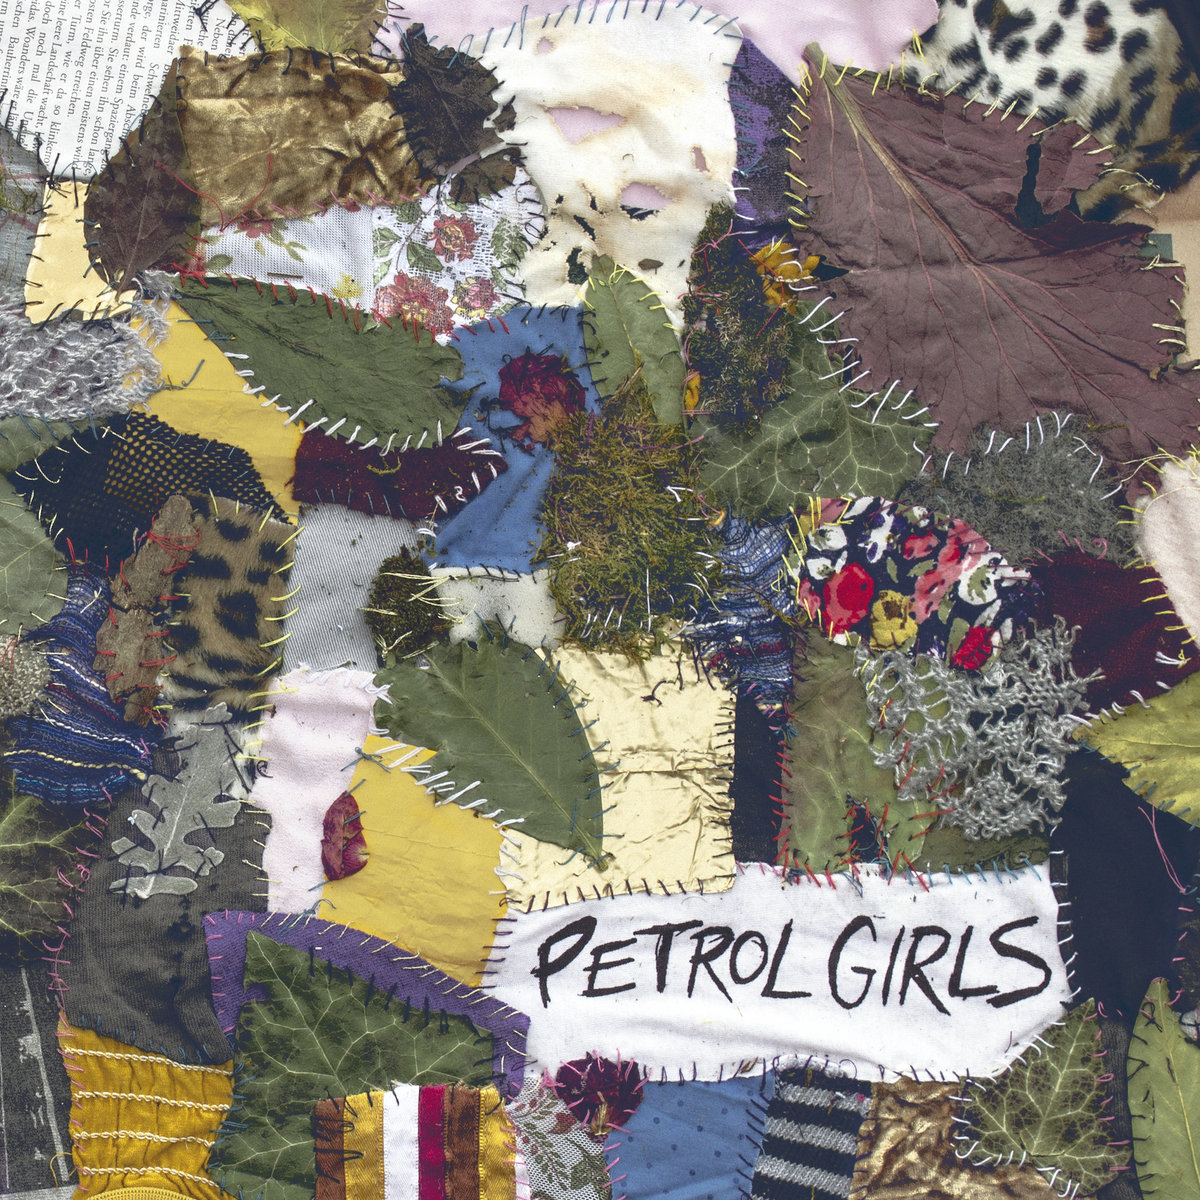 https://anonymousfiles.io/f/Petrol_Girls_-_Cut__Stitch_2019_320.zip